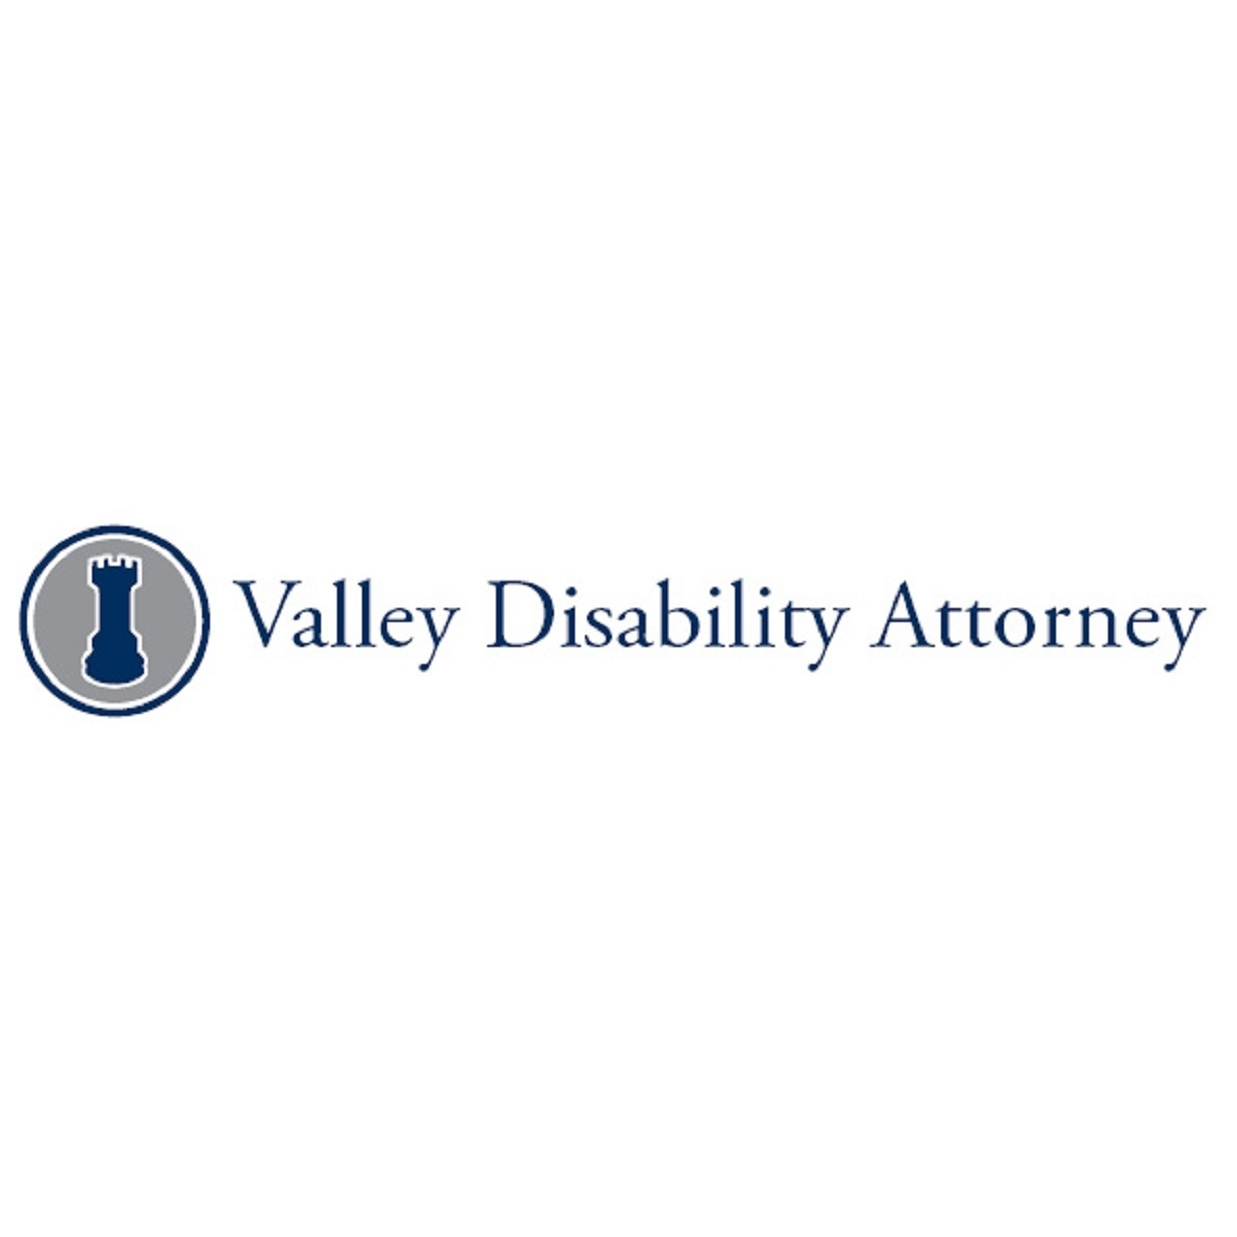 Valley Disability Attorney